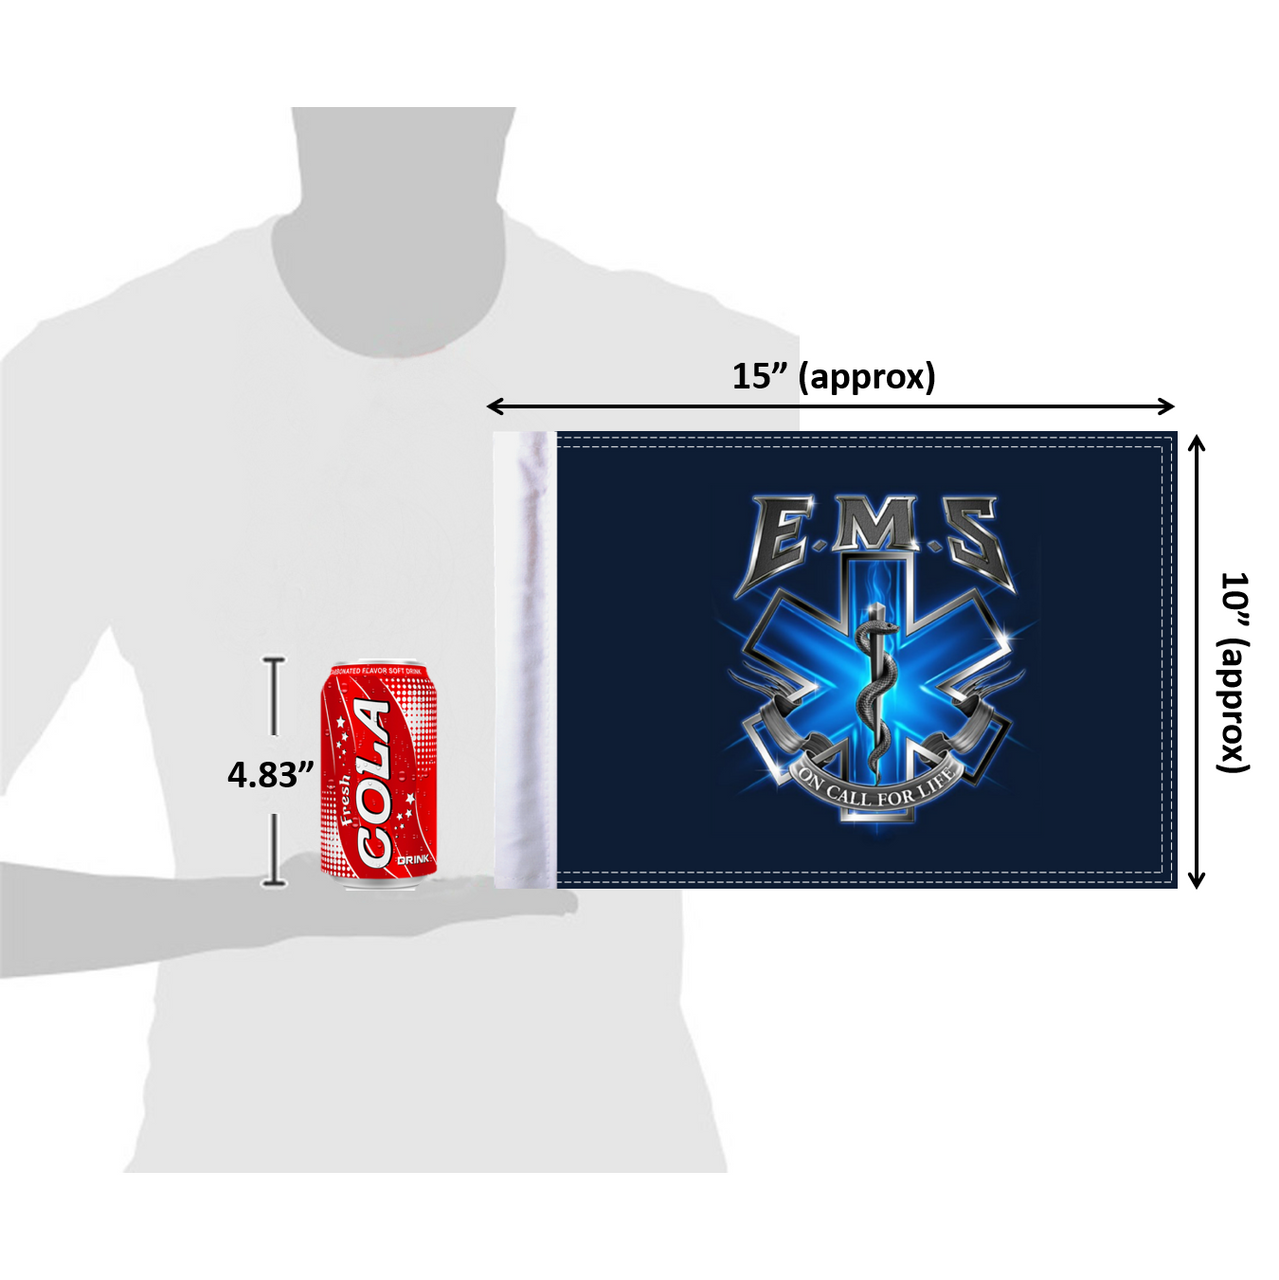 10x15 EMS On Call for Life (size comparison view)